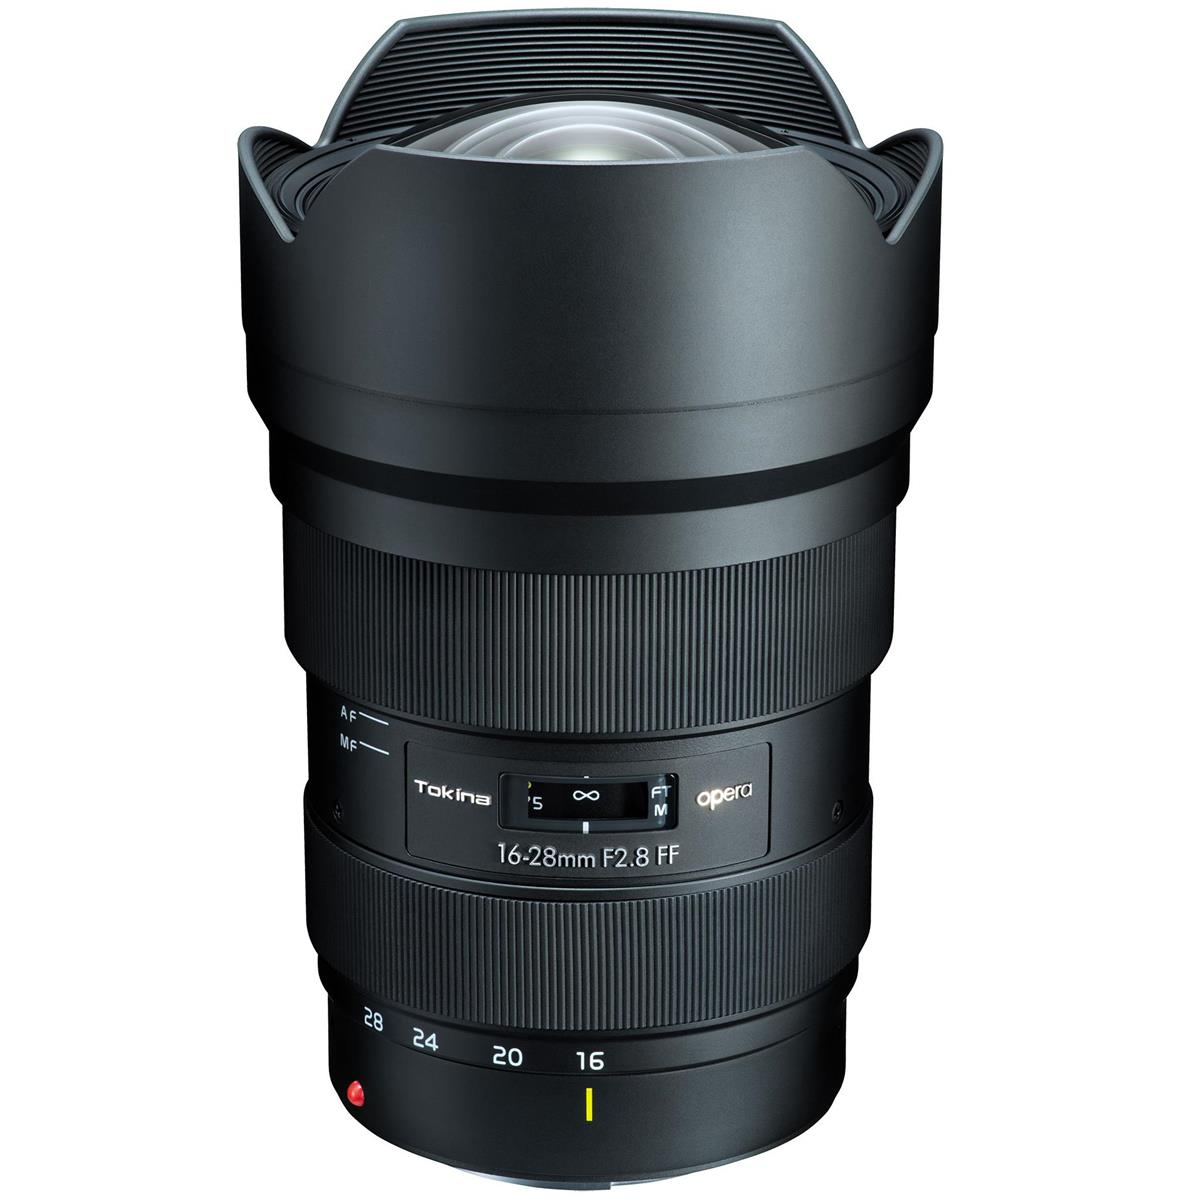 Tokina opera 16-28mm f/2.8 FF Lens for Canon EF